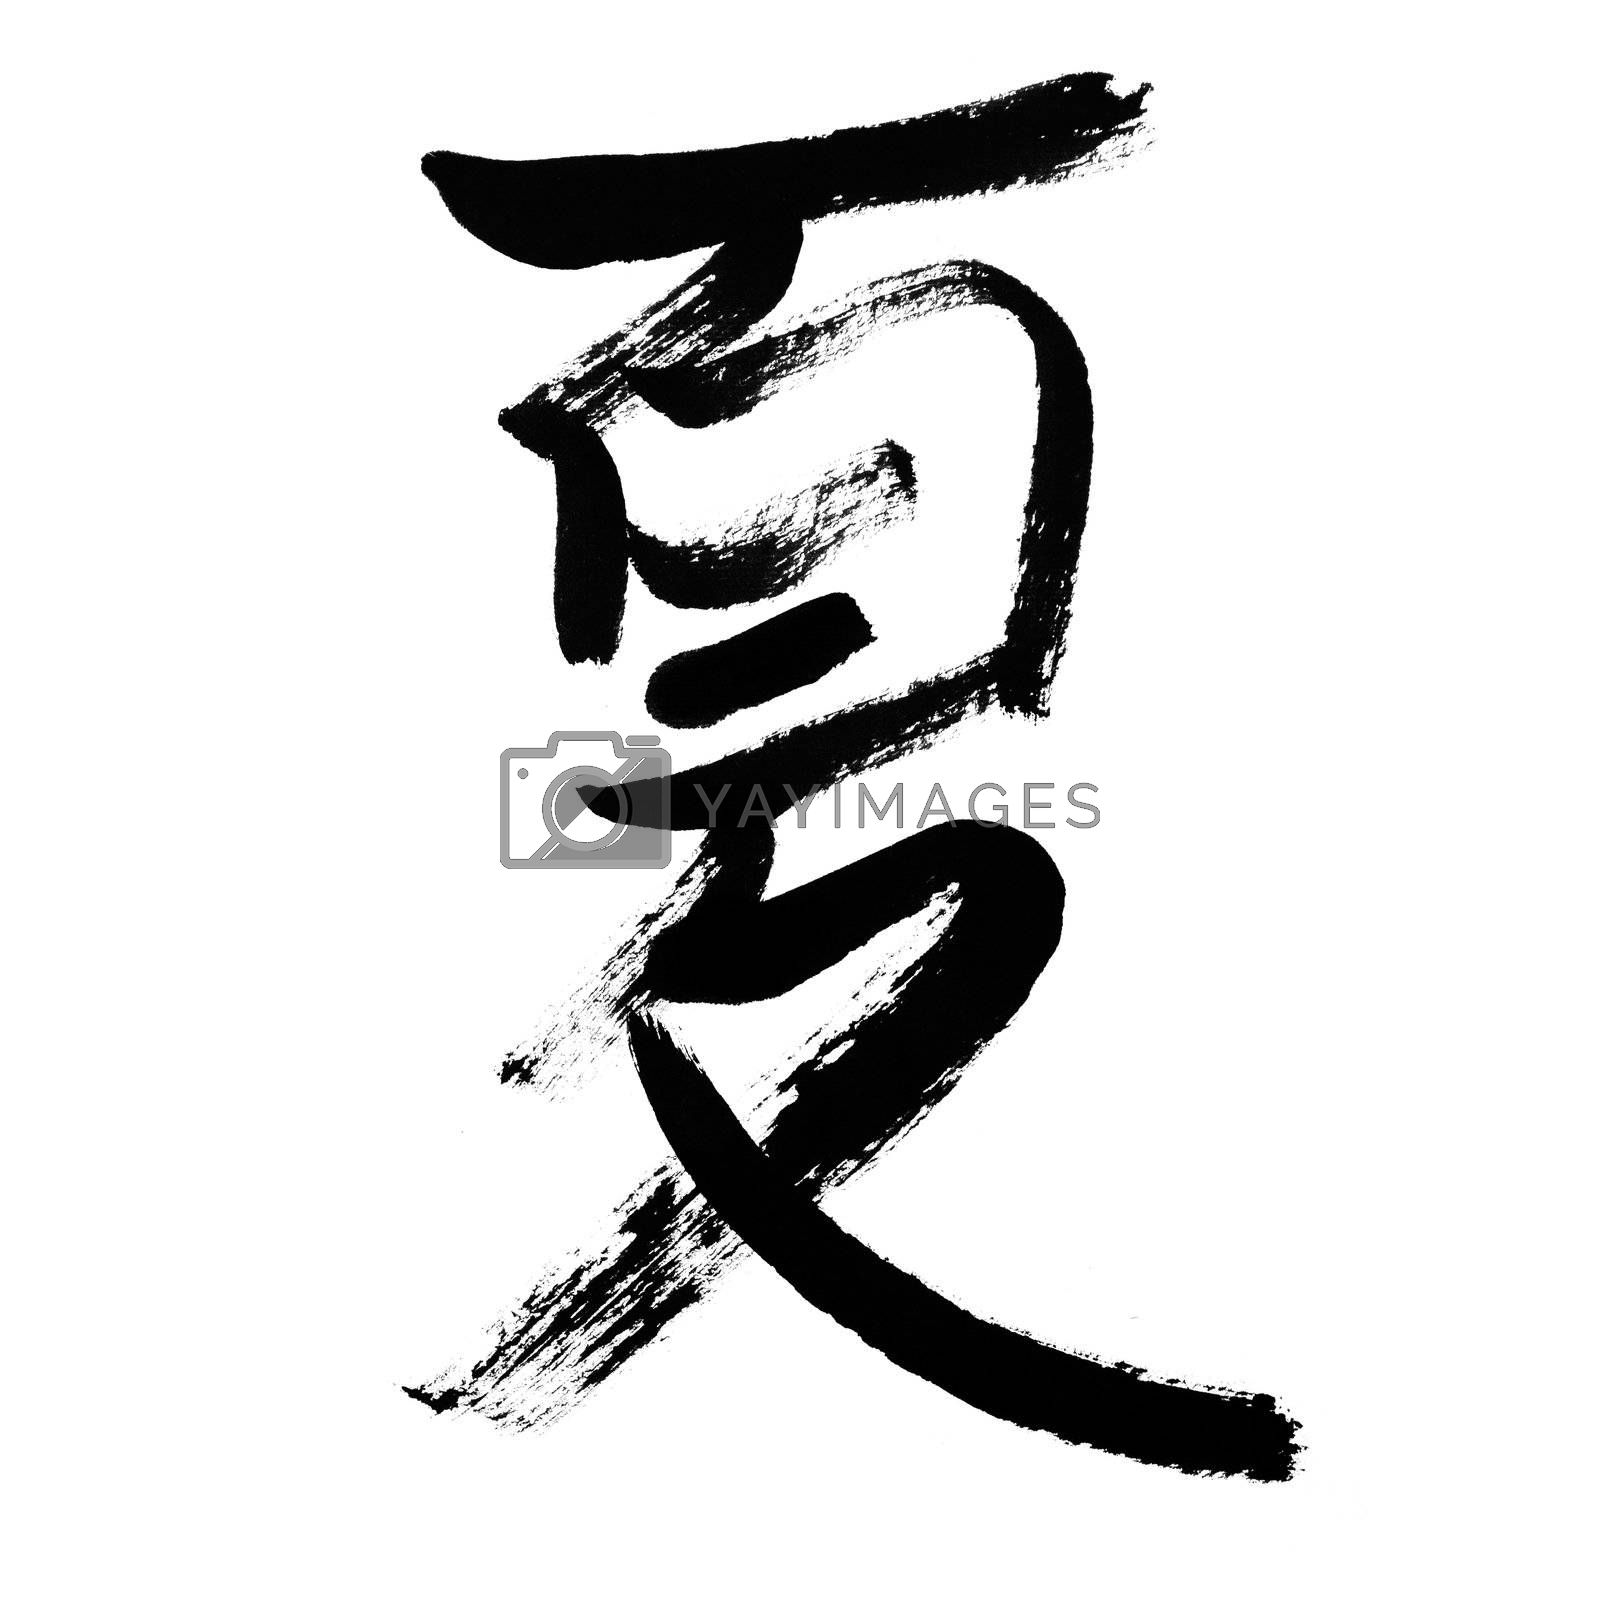 Summer, traditional chinese calligraphy art isolated on white background.